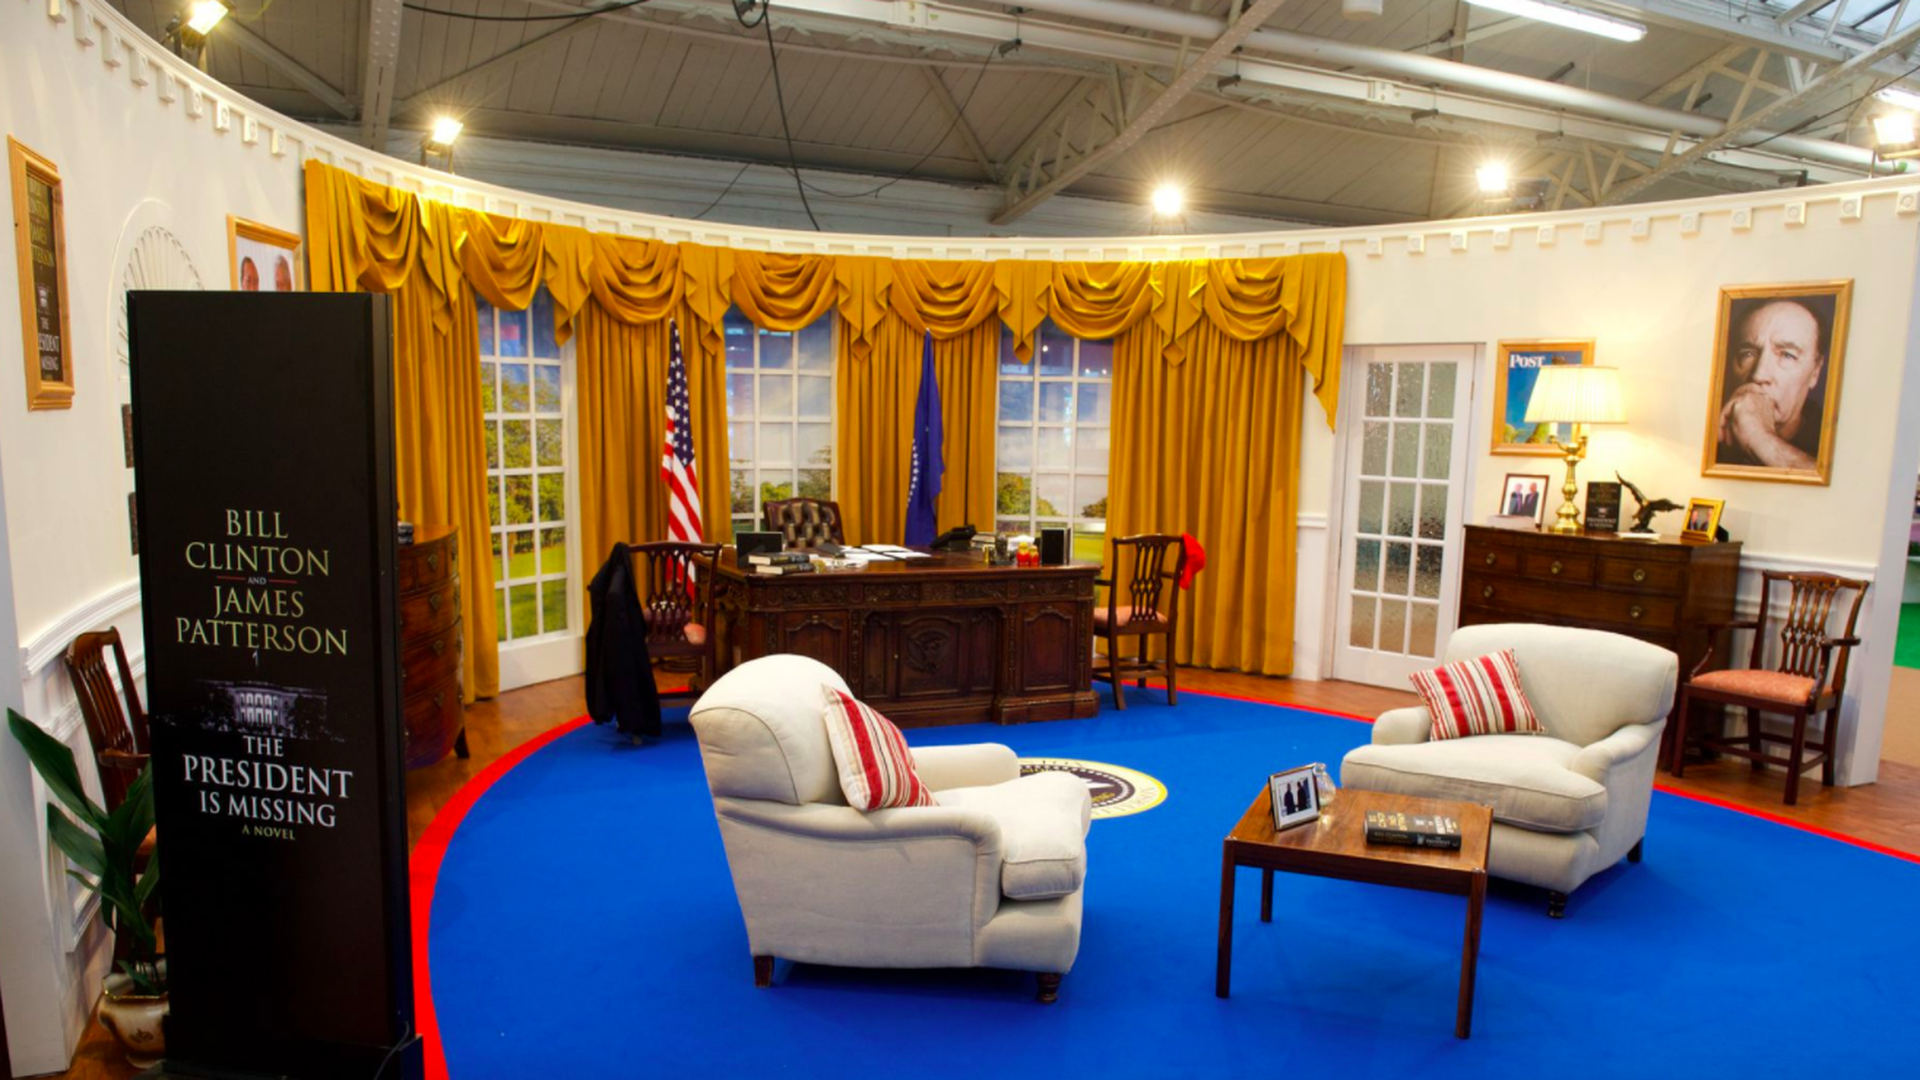 The Oval Office, re-created